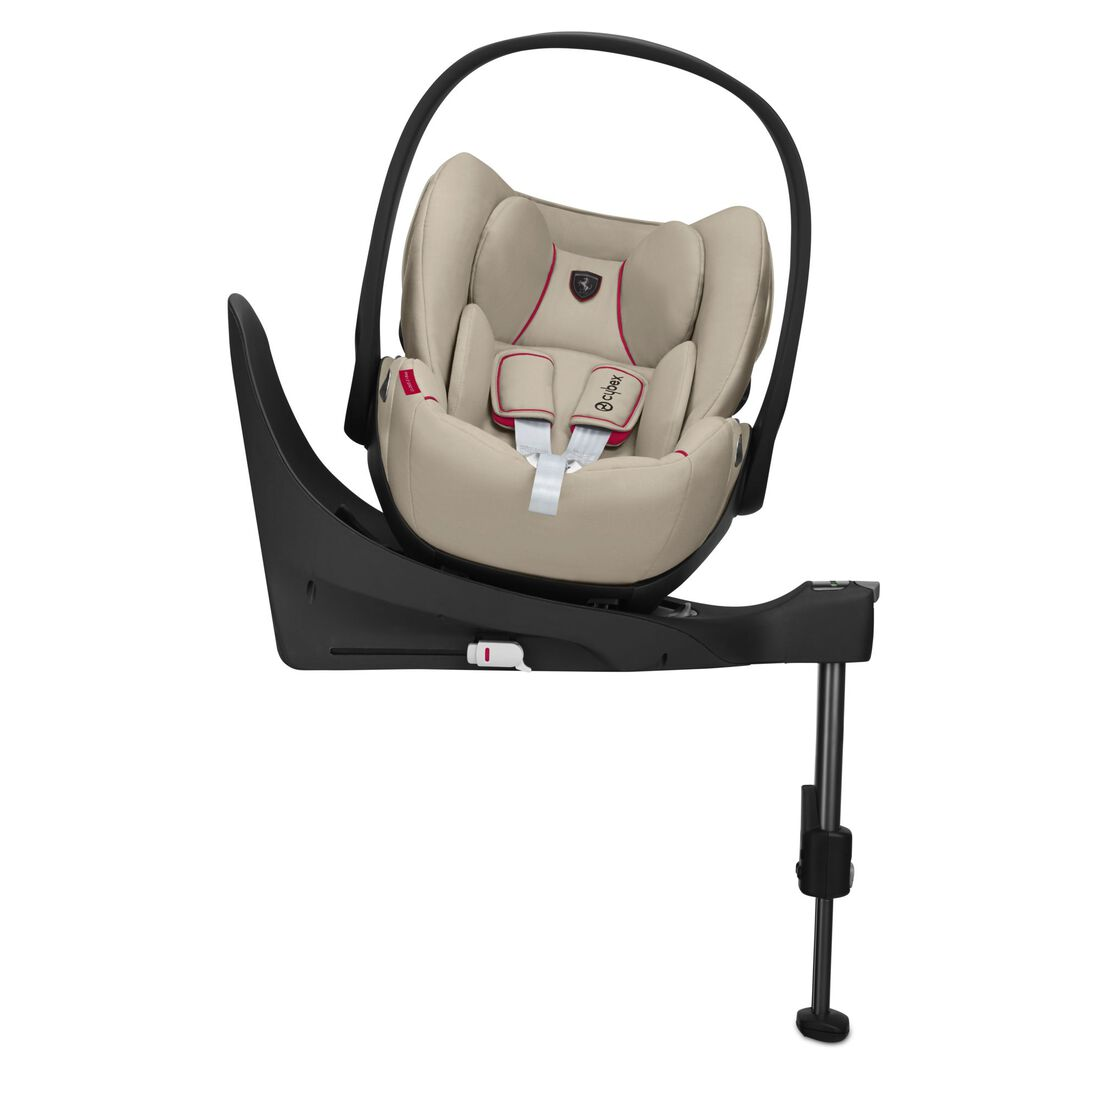 CYBEX Cloud Z i-Size - Ferrari Silver Grey in Ferrari Silver Grey large Bild 6